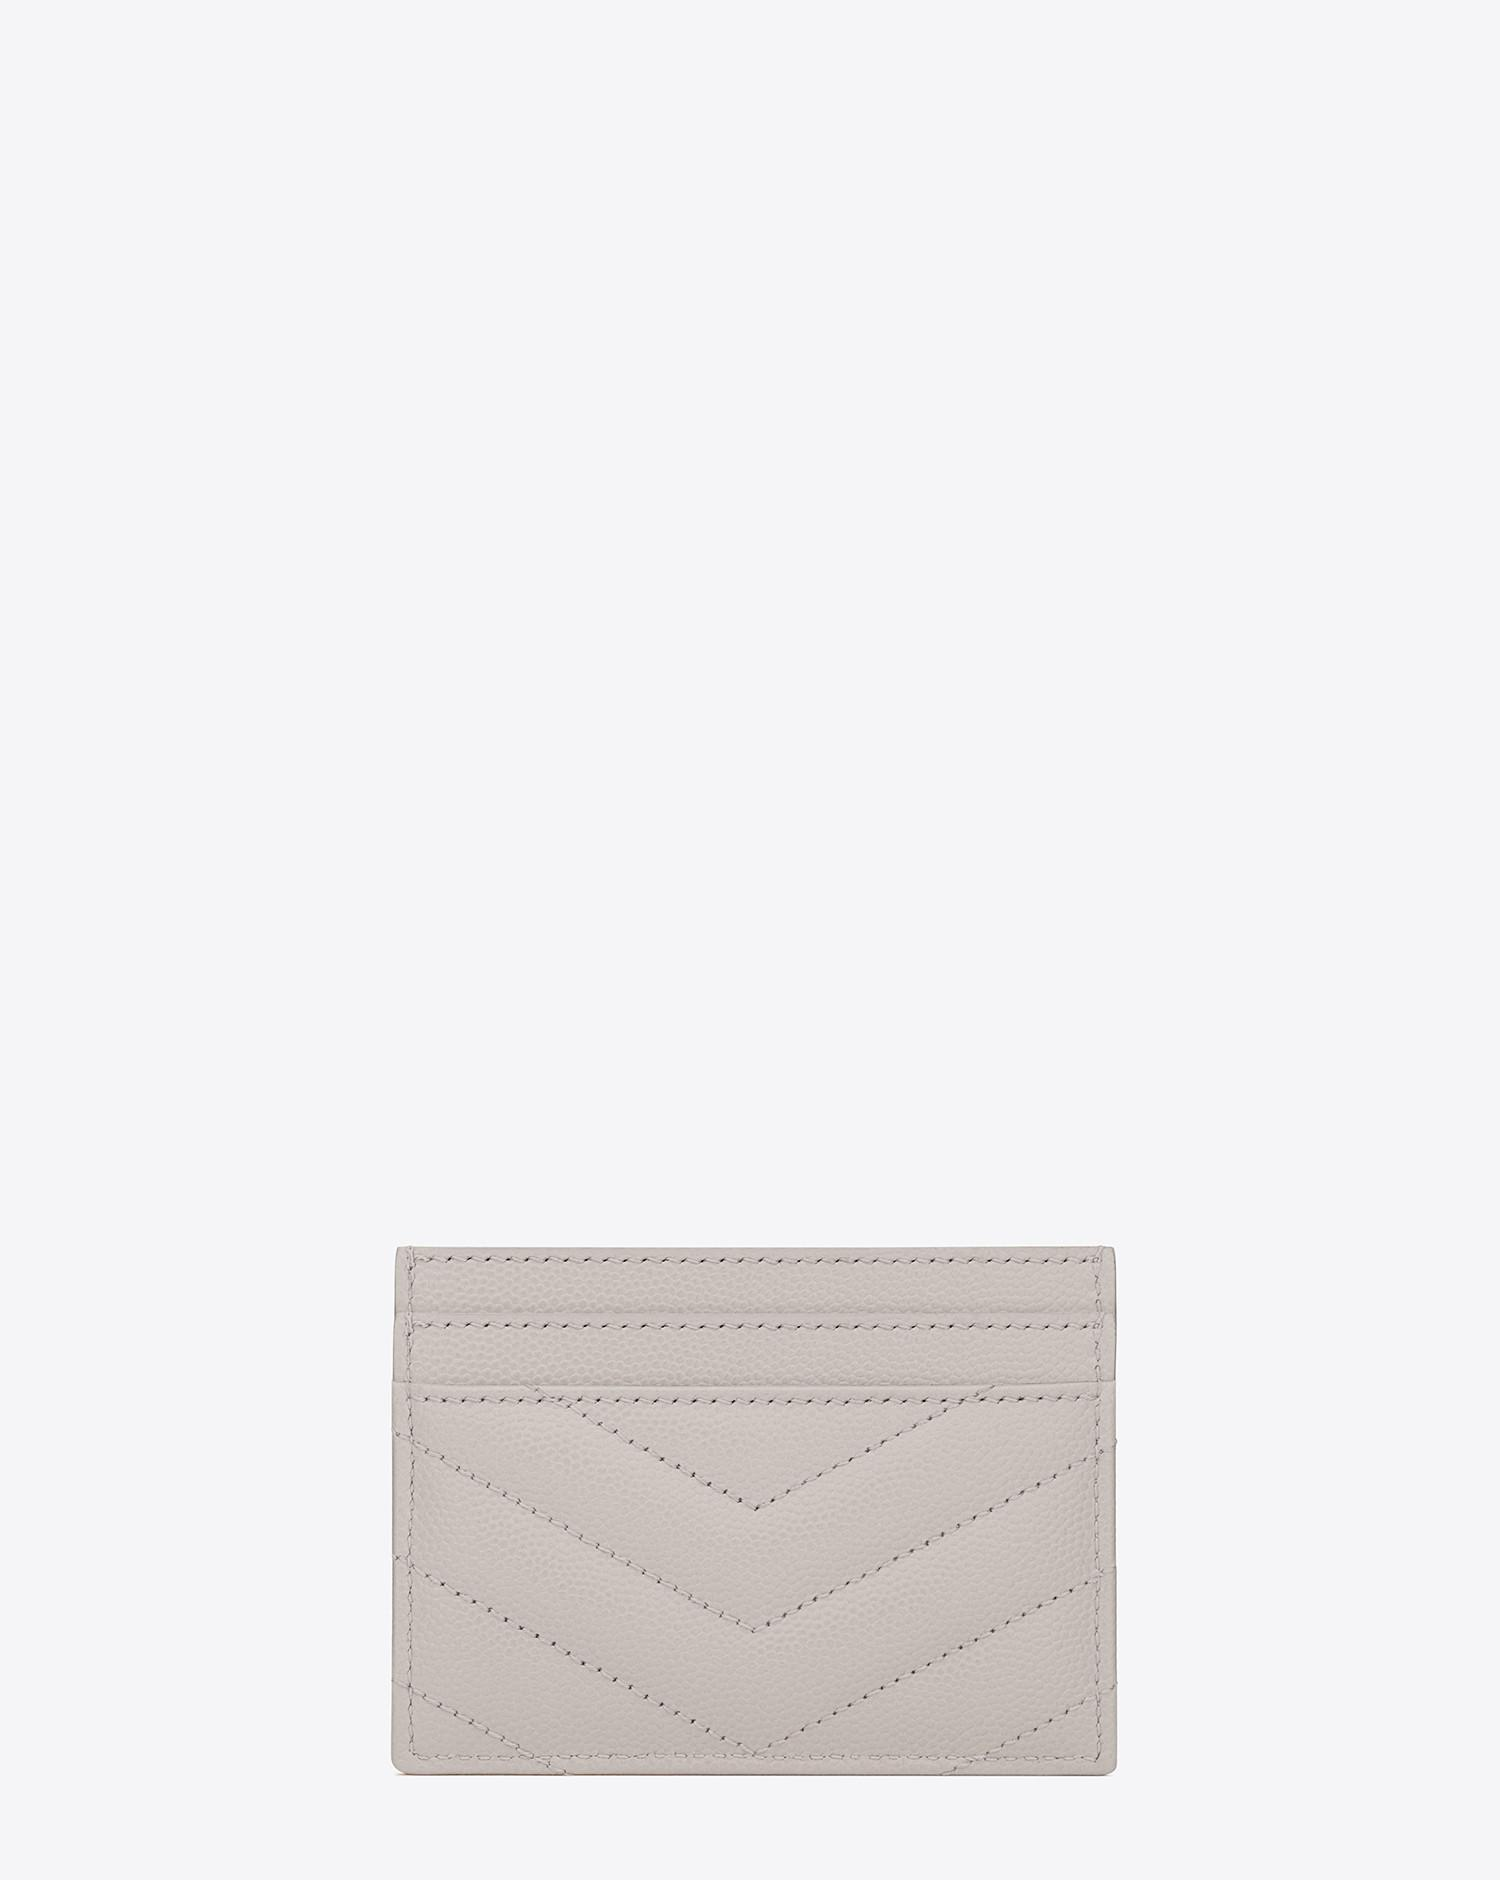 Lyst - Saint Laurent Monogram Card Case In Grain De Poudre Embossed Leather  in White 387542384cd4d